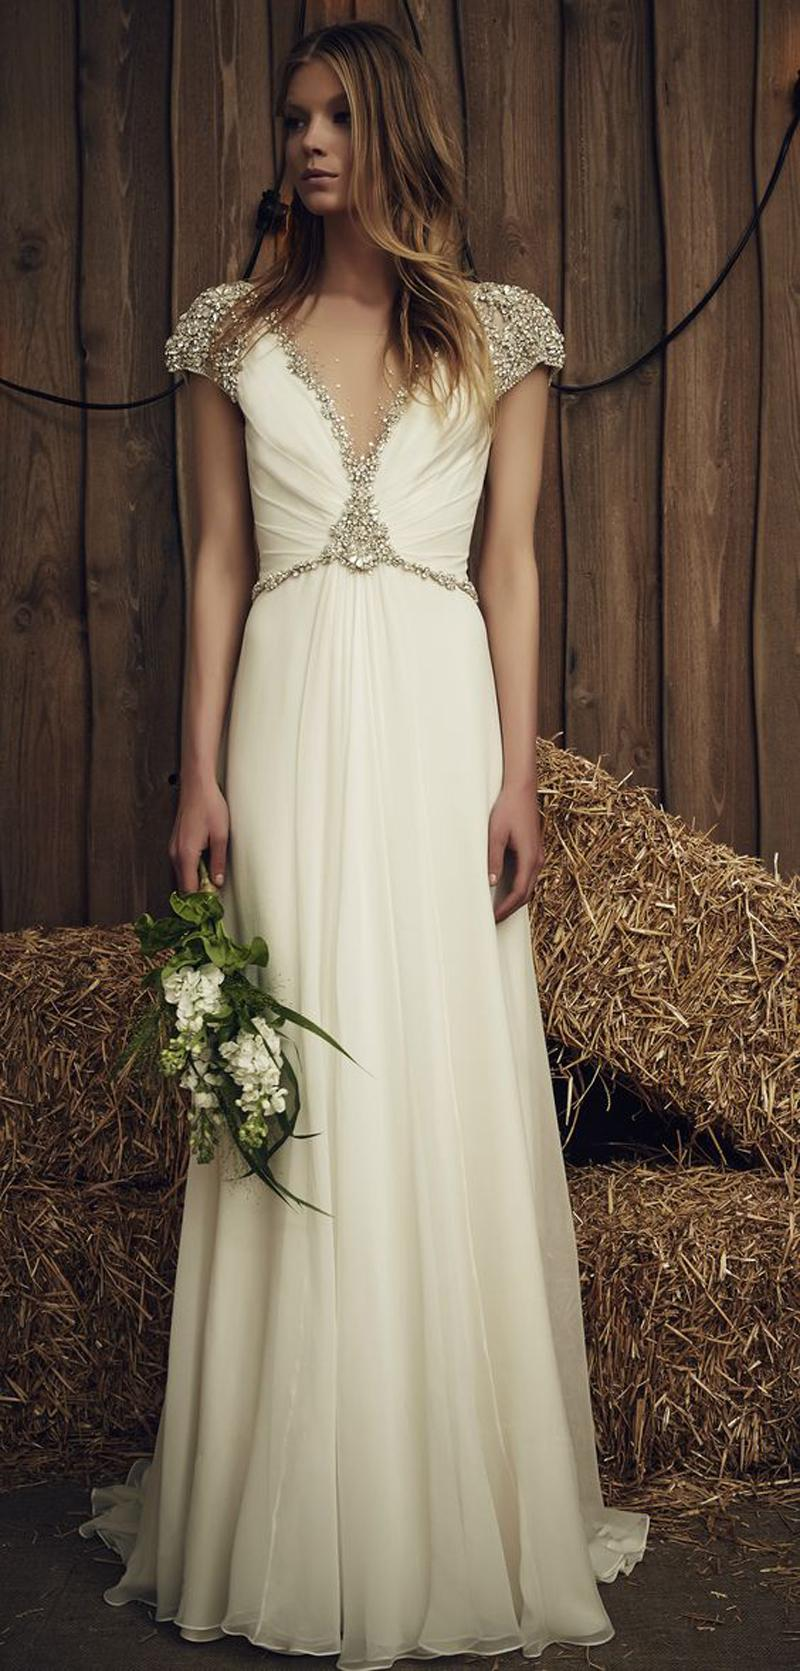 crystals beaded beach chiffon wedding dresses 2017 jenny packham bridal gowns bateau v-neck neckline sweep train wedding gowns